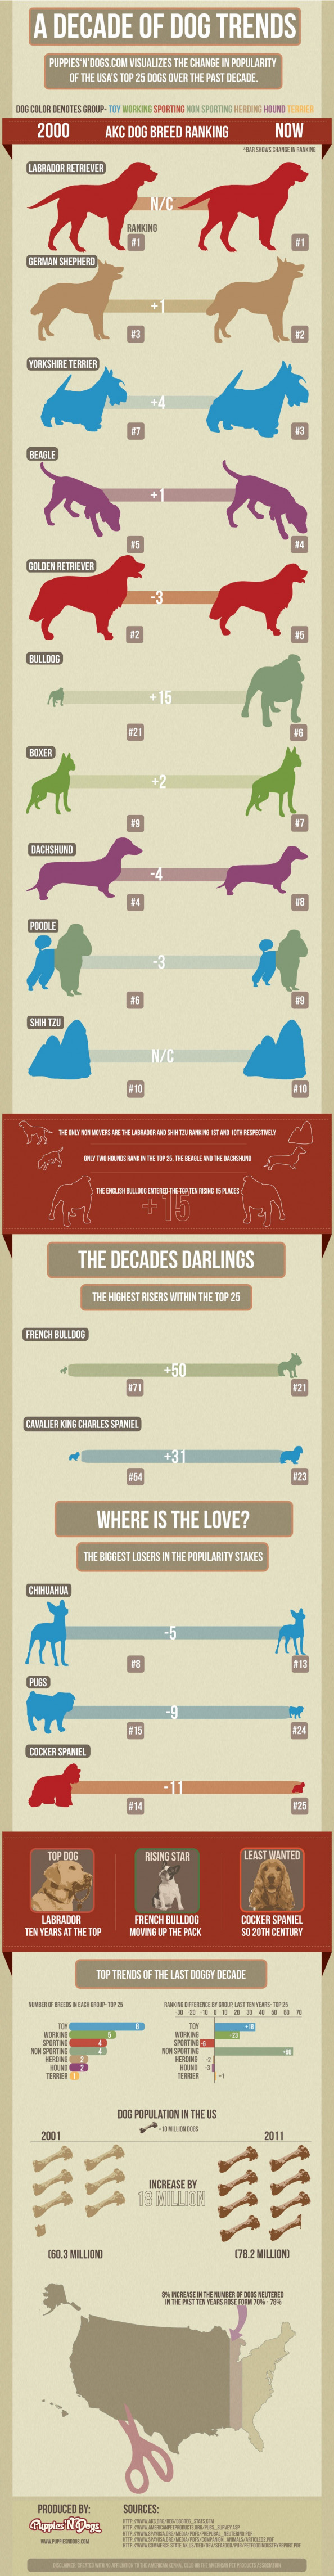 A Decade of Dog Trends Infographic